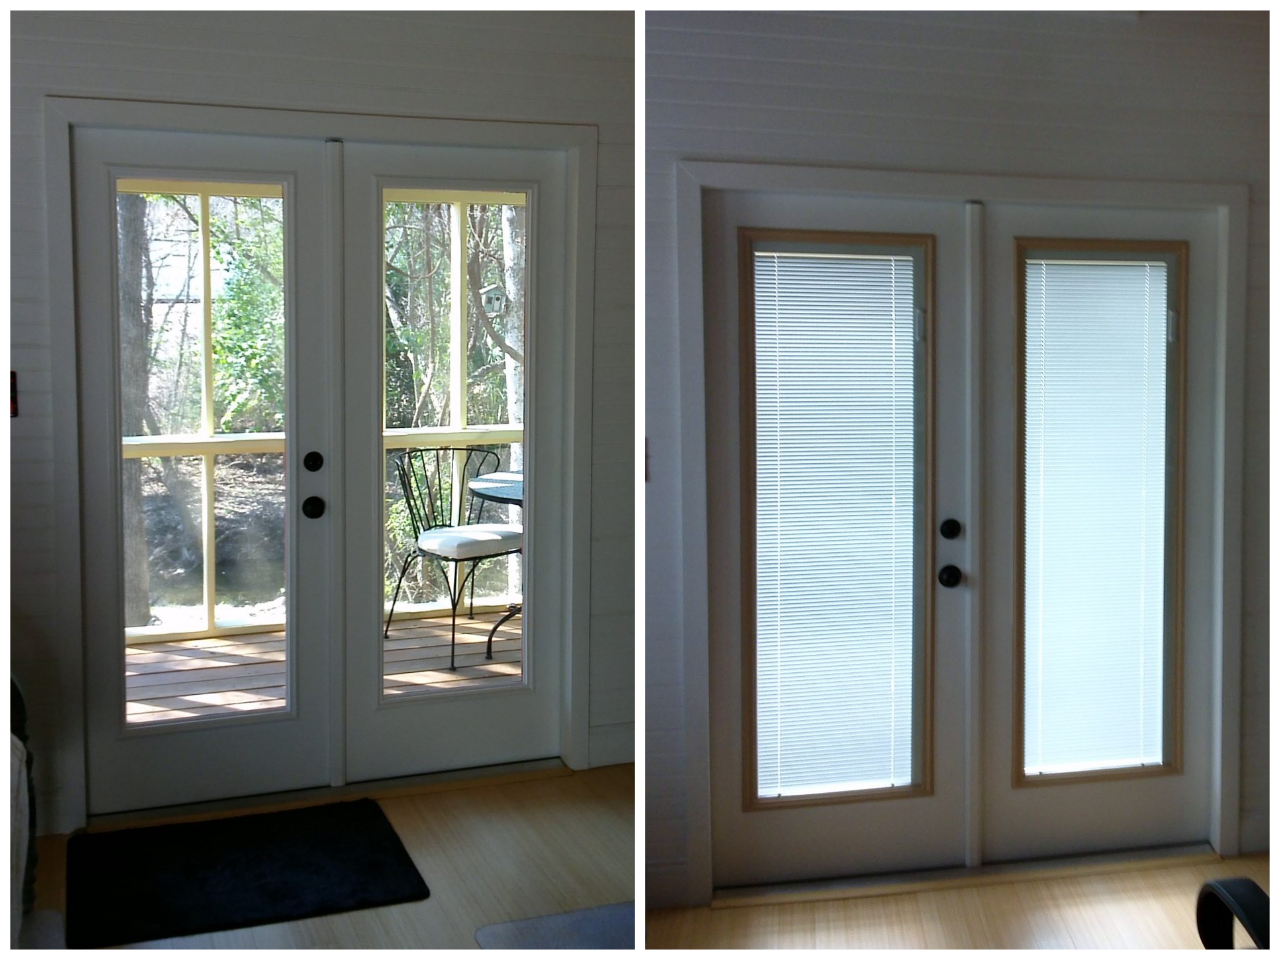 Before And After Images Of A French Door Inhouz Removed The